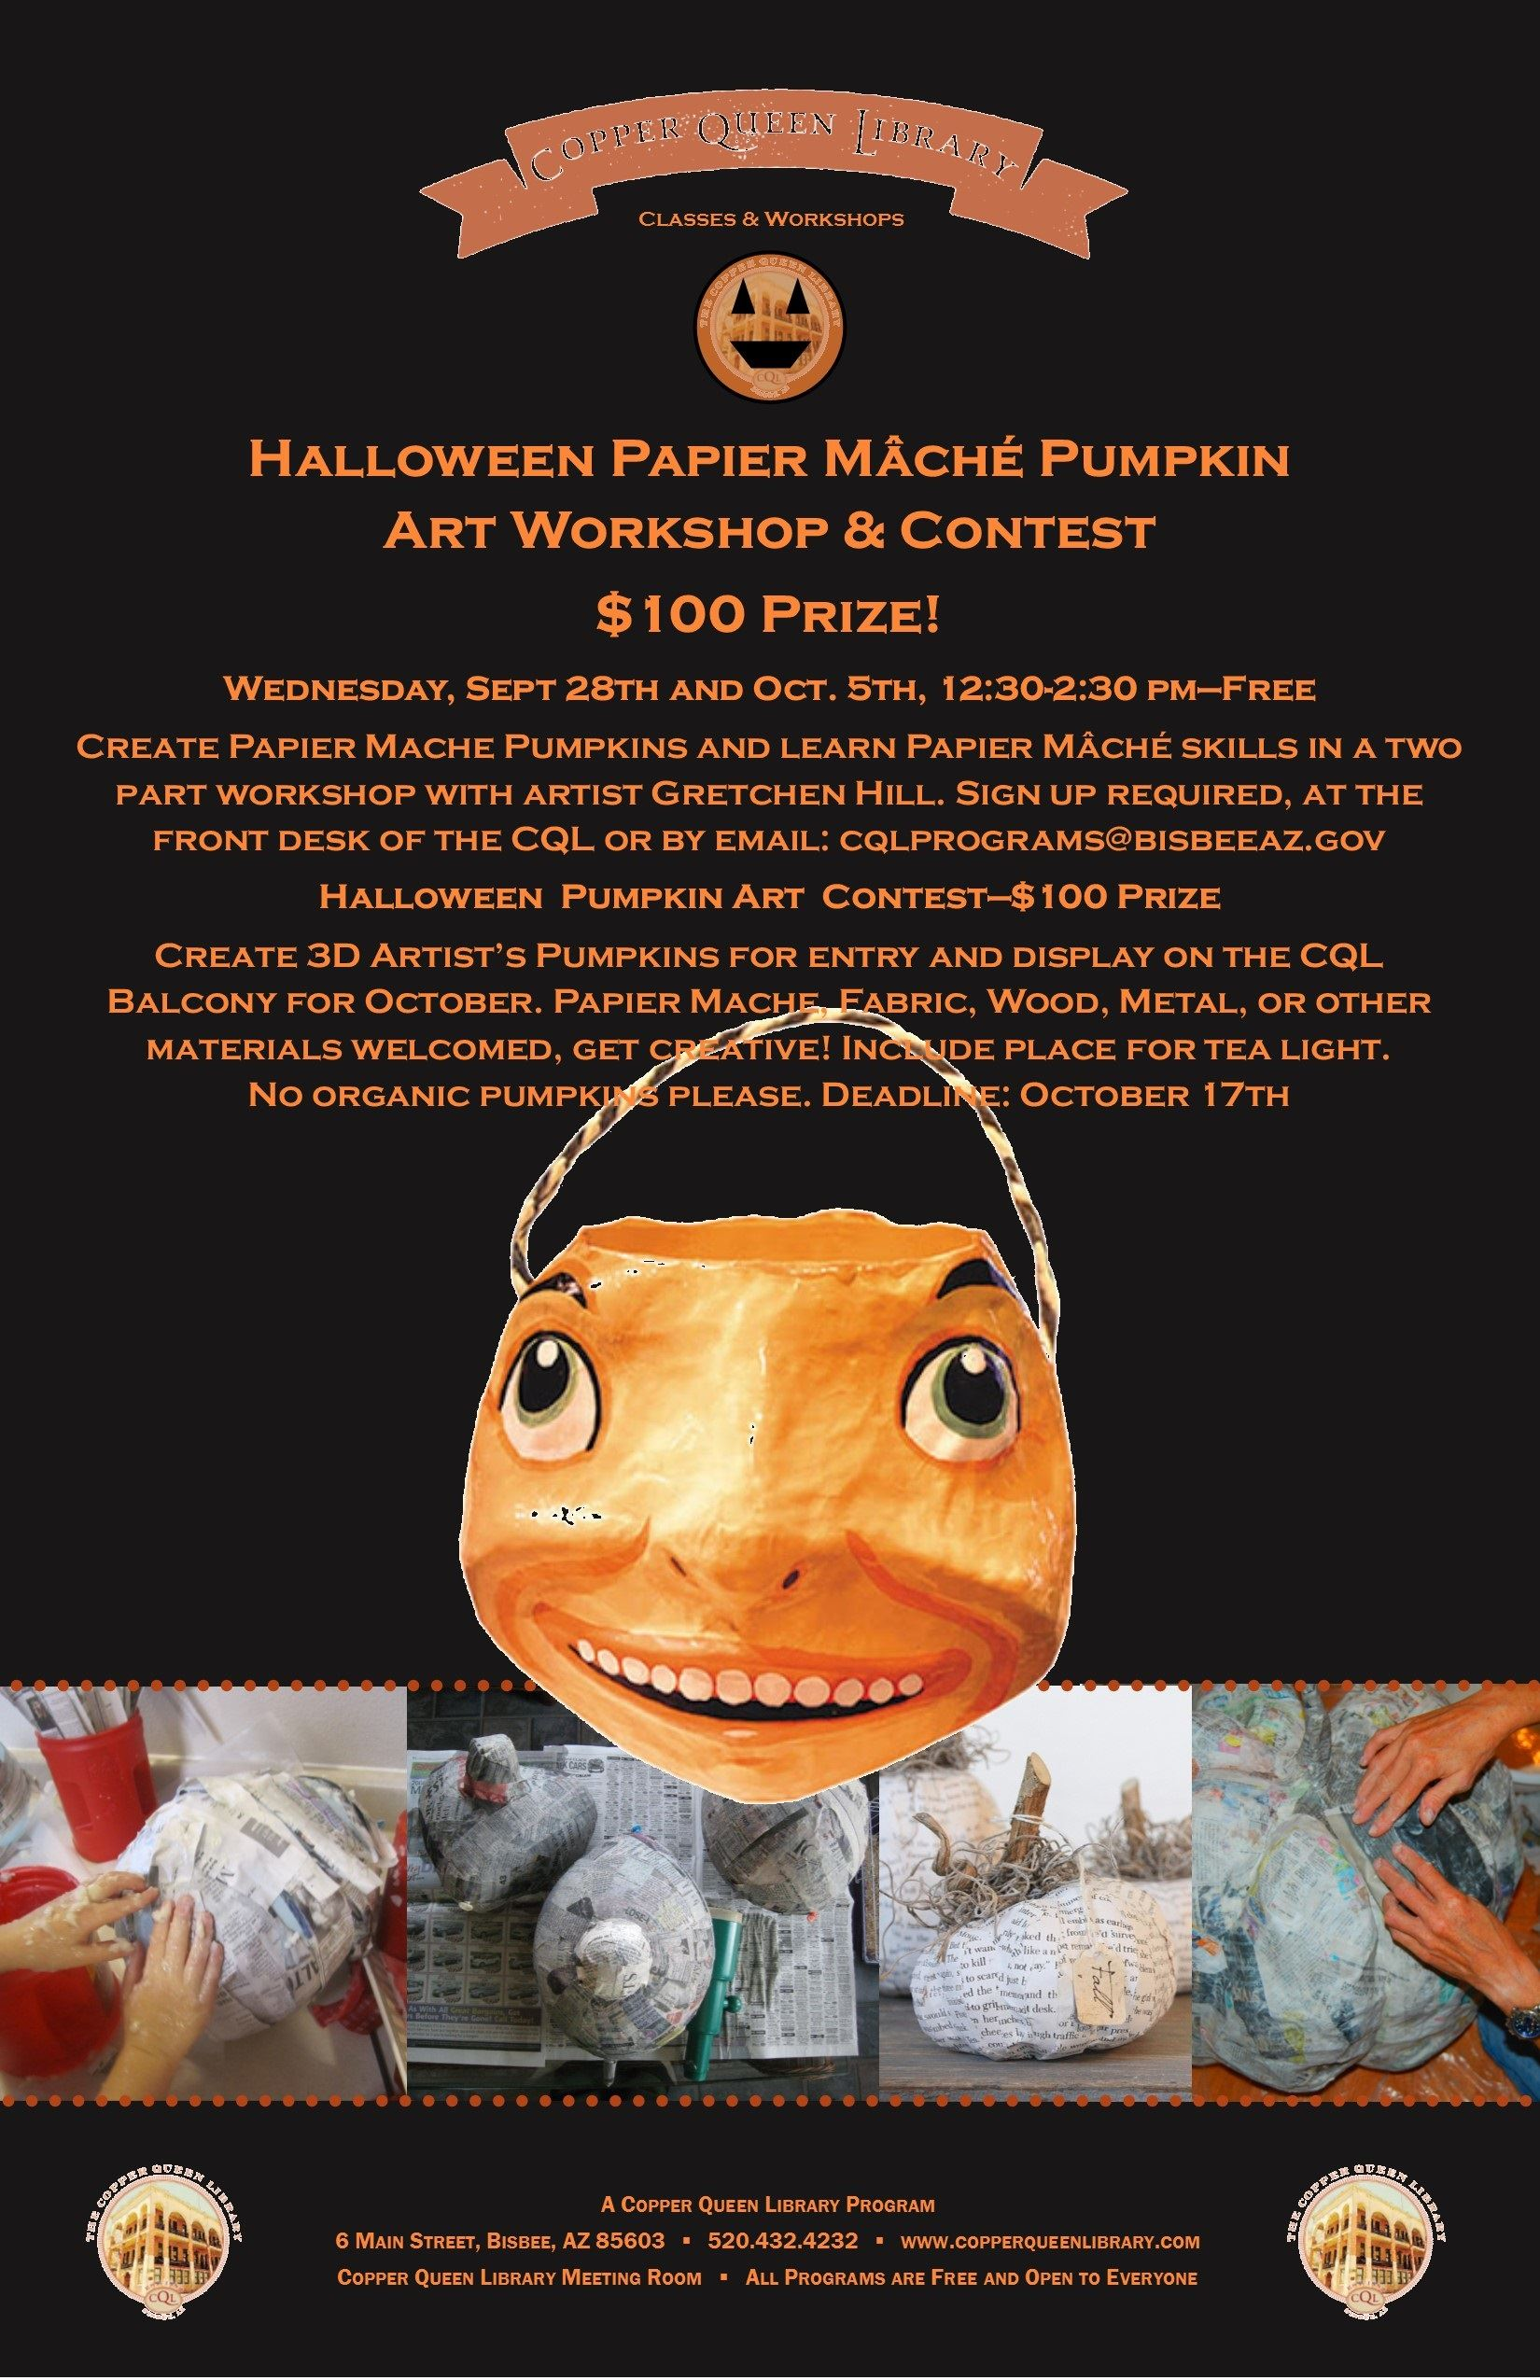 PUMPKIN ART WORKSHOP CONTEST 2016